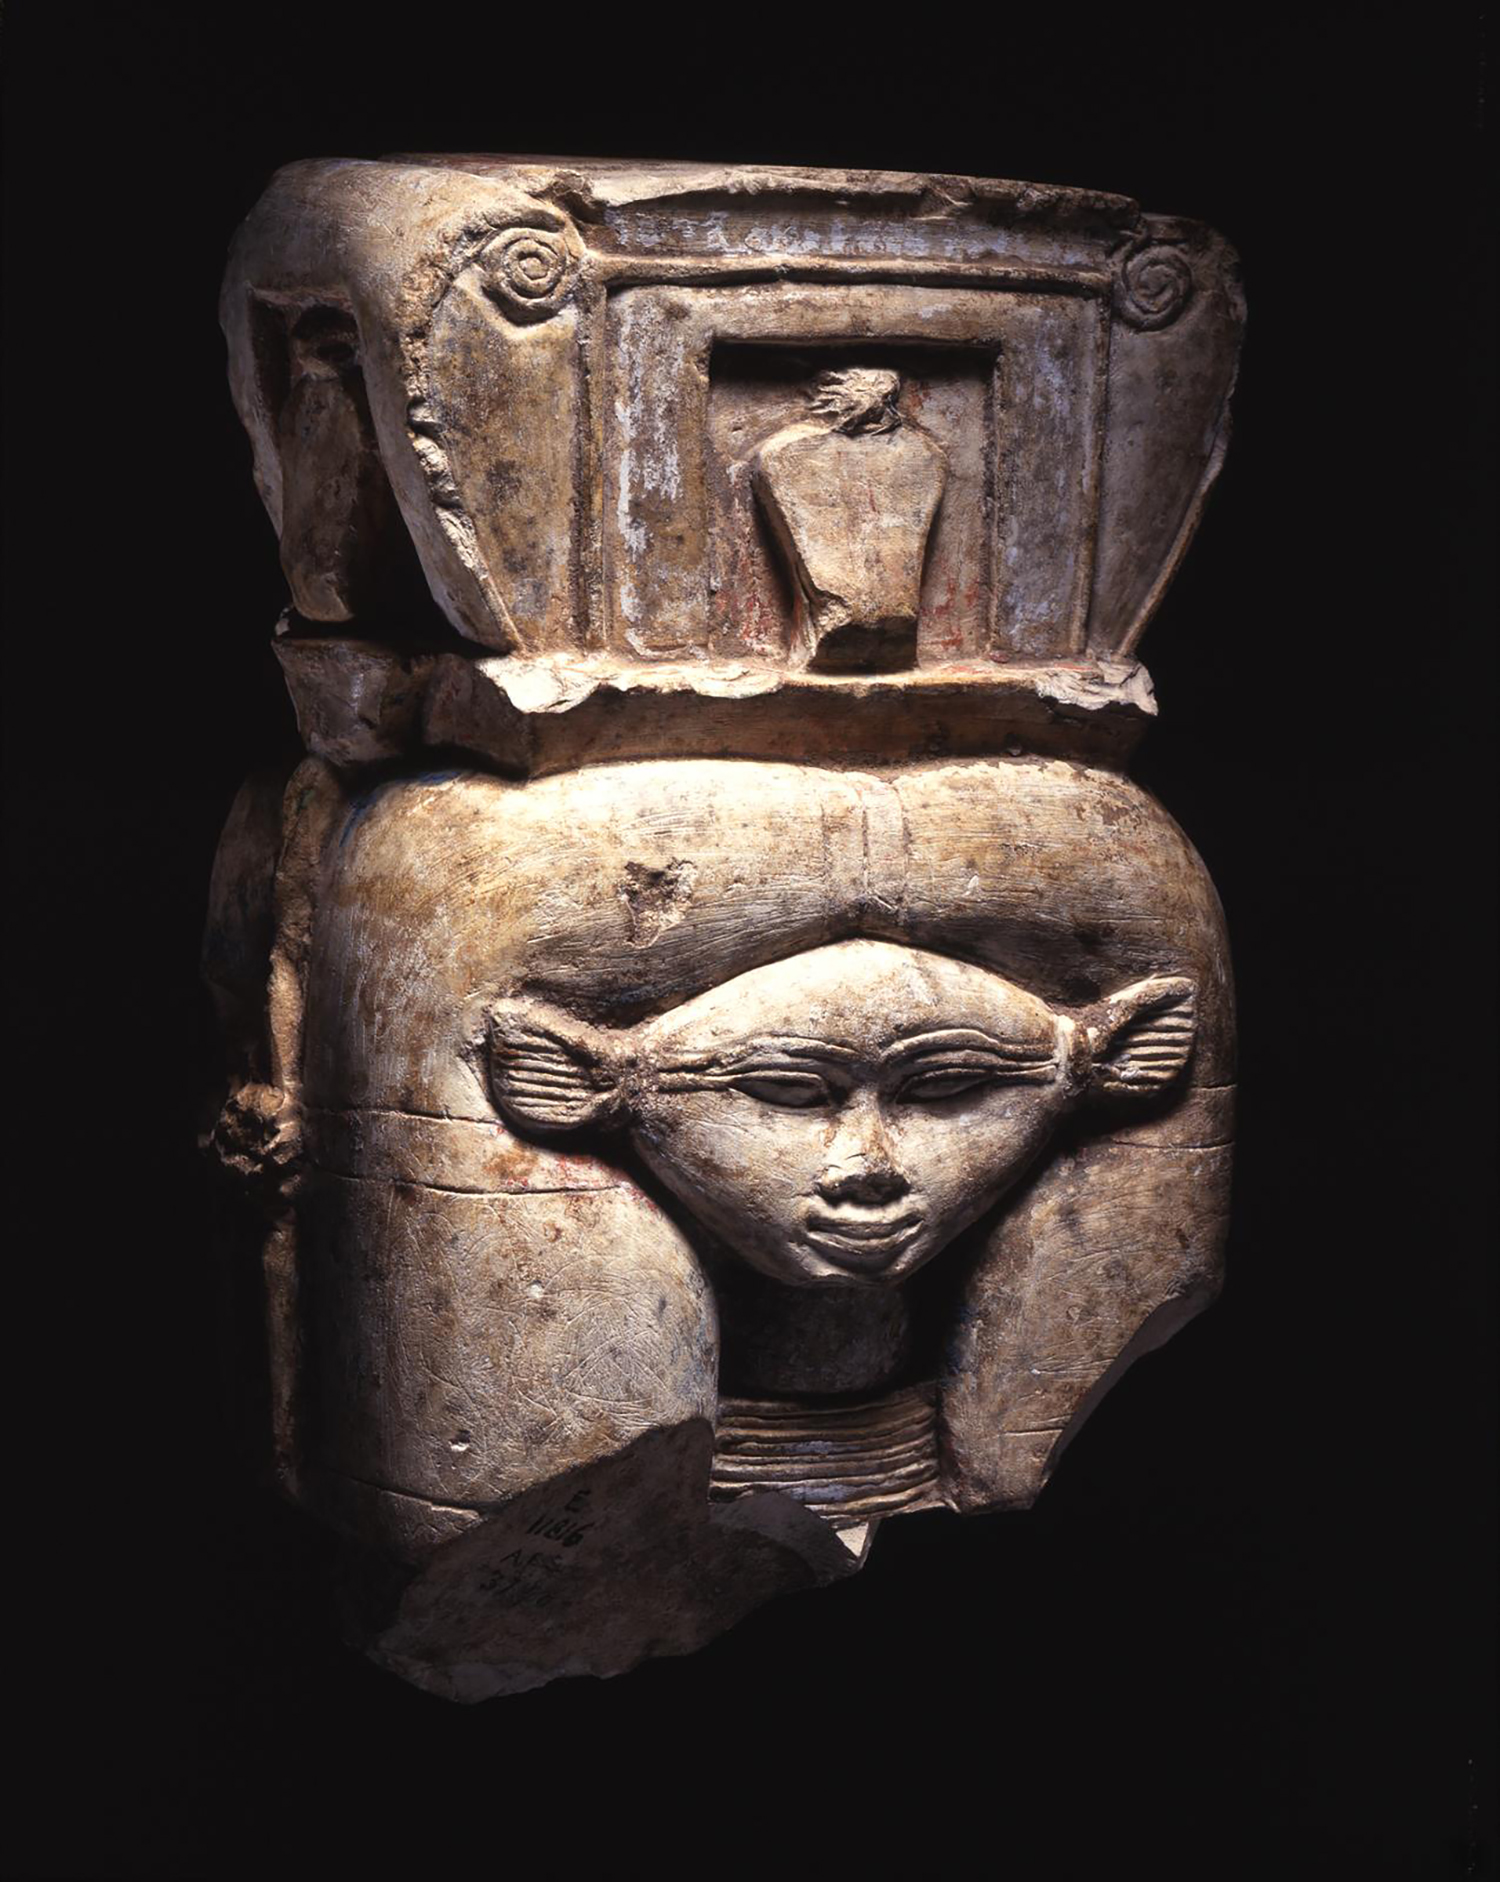 Figure 20: While Hathor could appear in fully human, or fully bovine form, a common representation of the goddess combines both forms. The Hathor head image can be seen on this fragmentary statue; Hathor is shown with cow ears and a triangularly shaped face. Photo courtesy of the University of Pennsylvania Museum of Archaeology and Anthropology [UPMAA E11816].